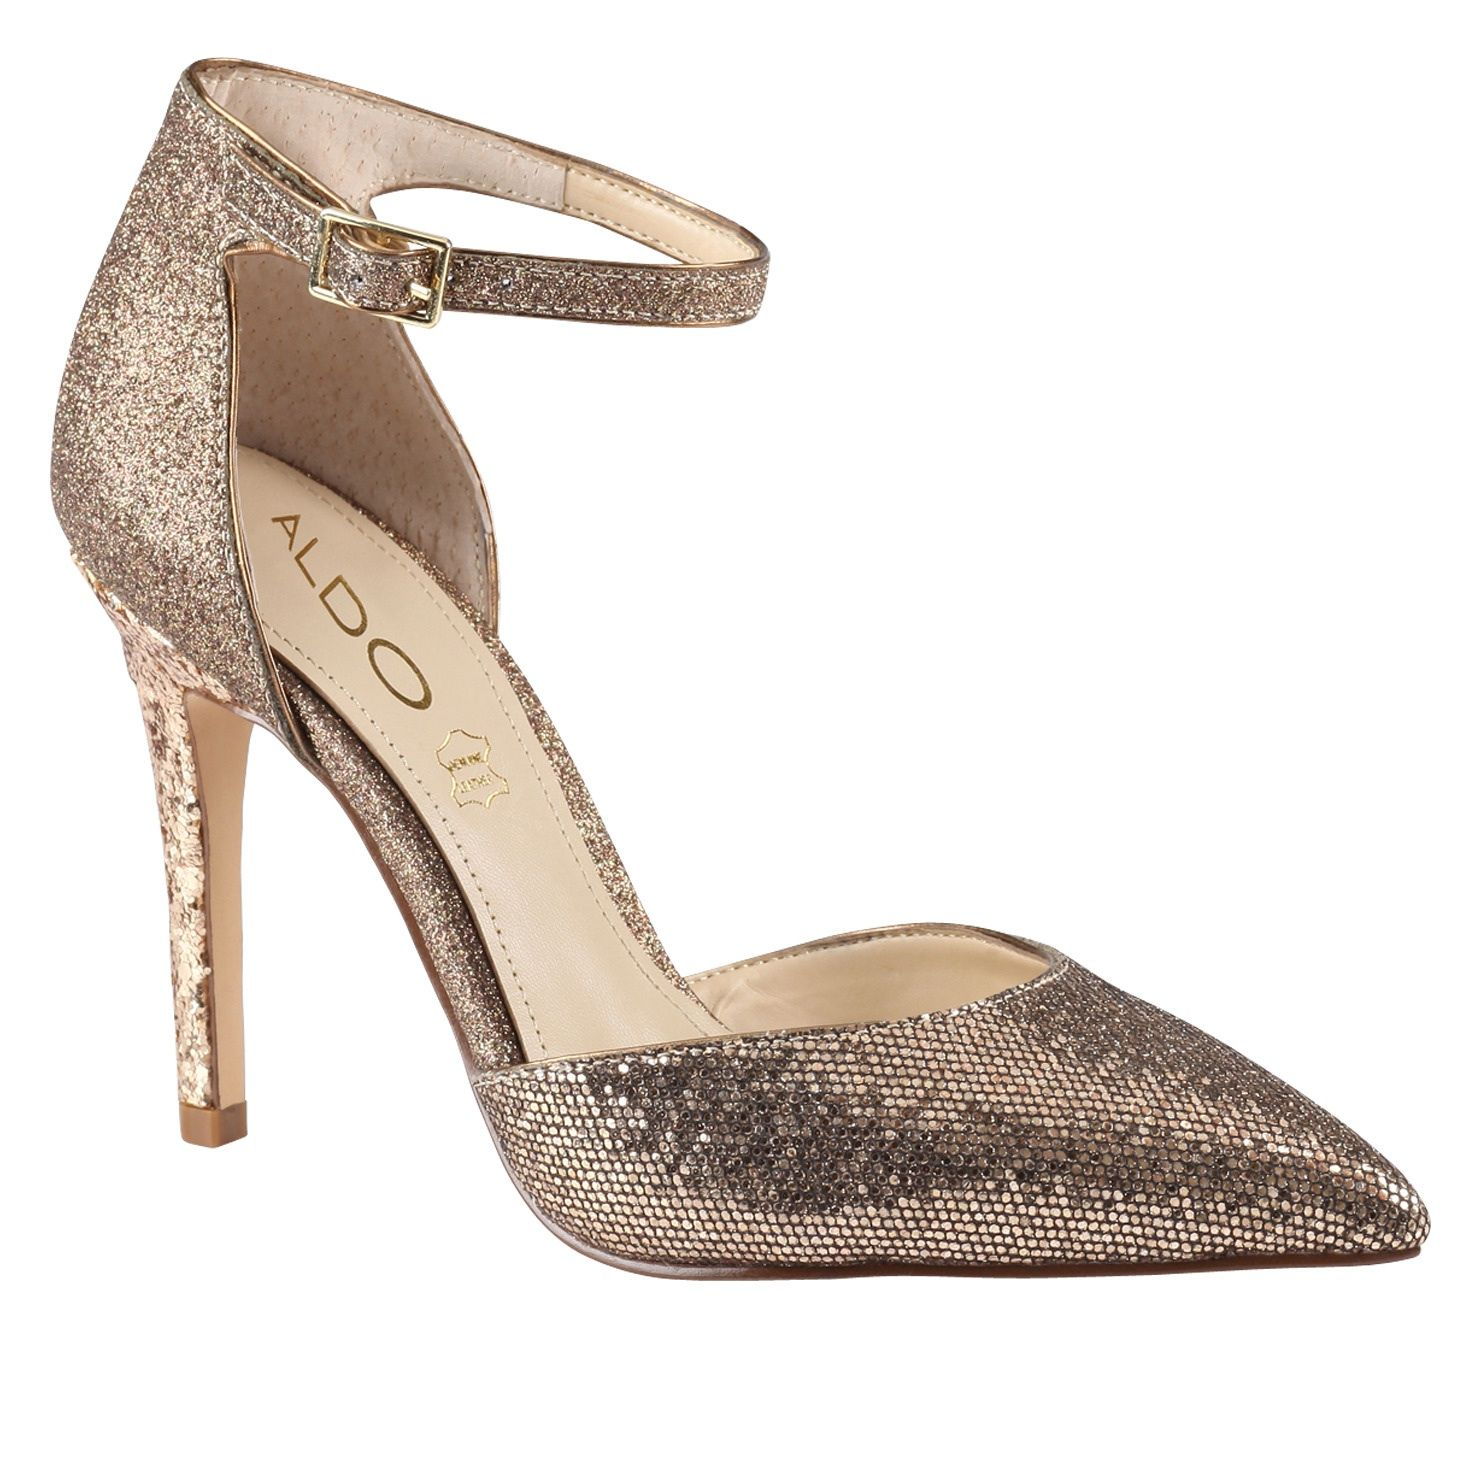 Aldo gold ankle strap heel | All That Glitters | Pinterest | Ankle ...